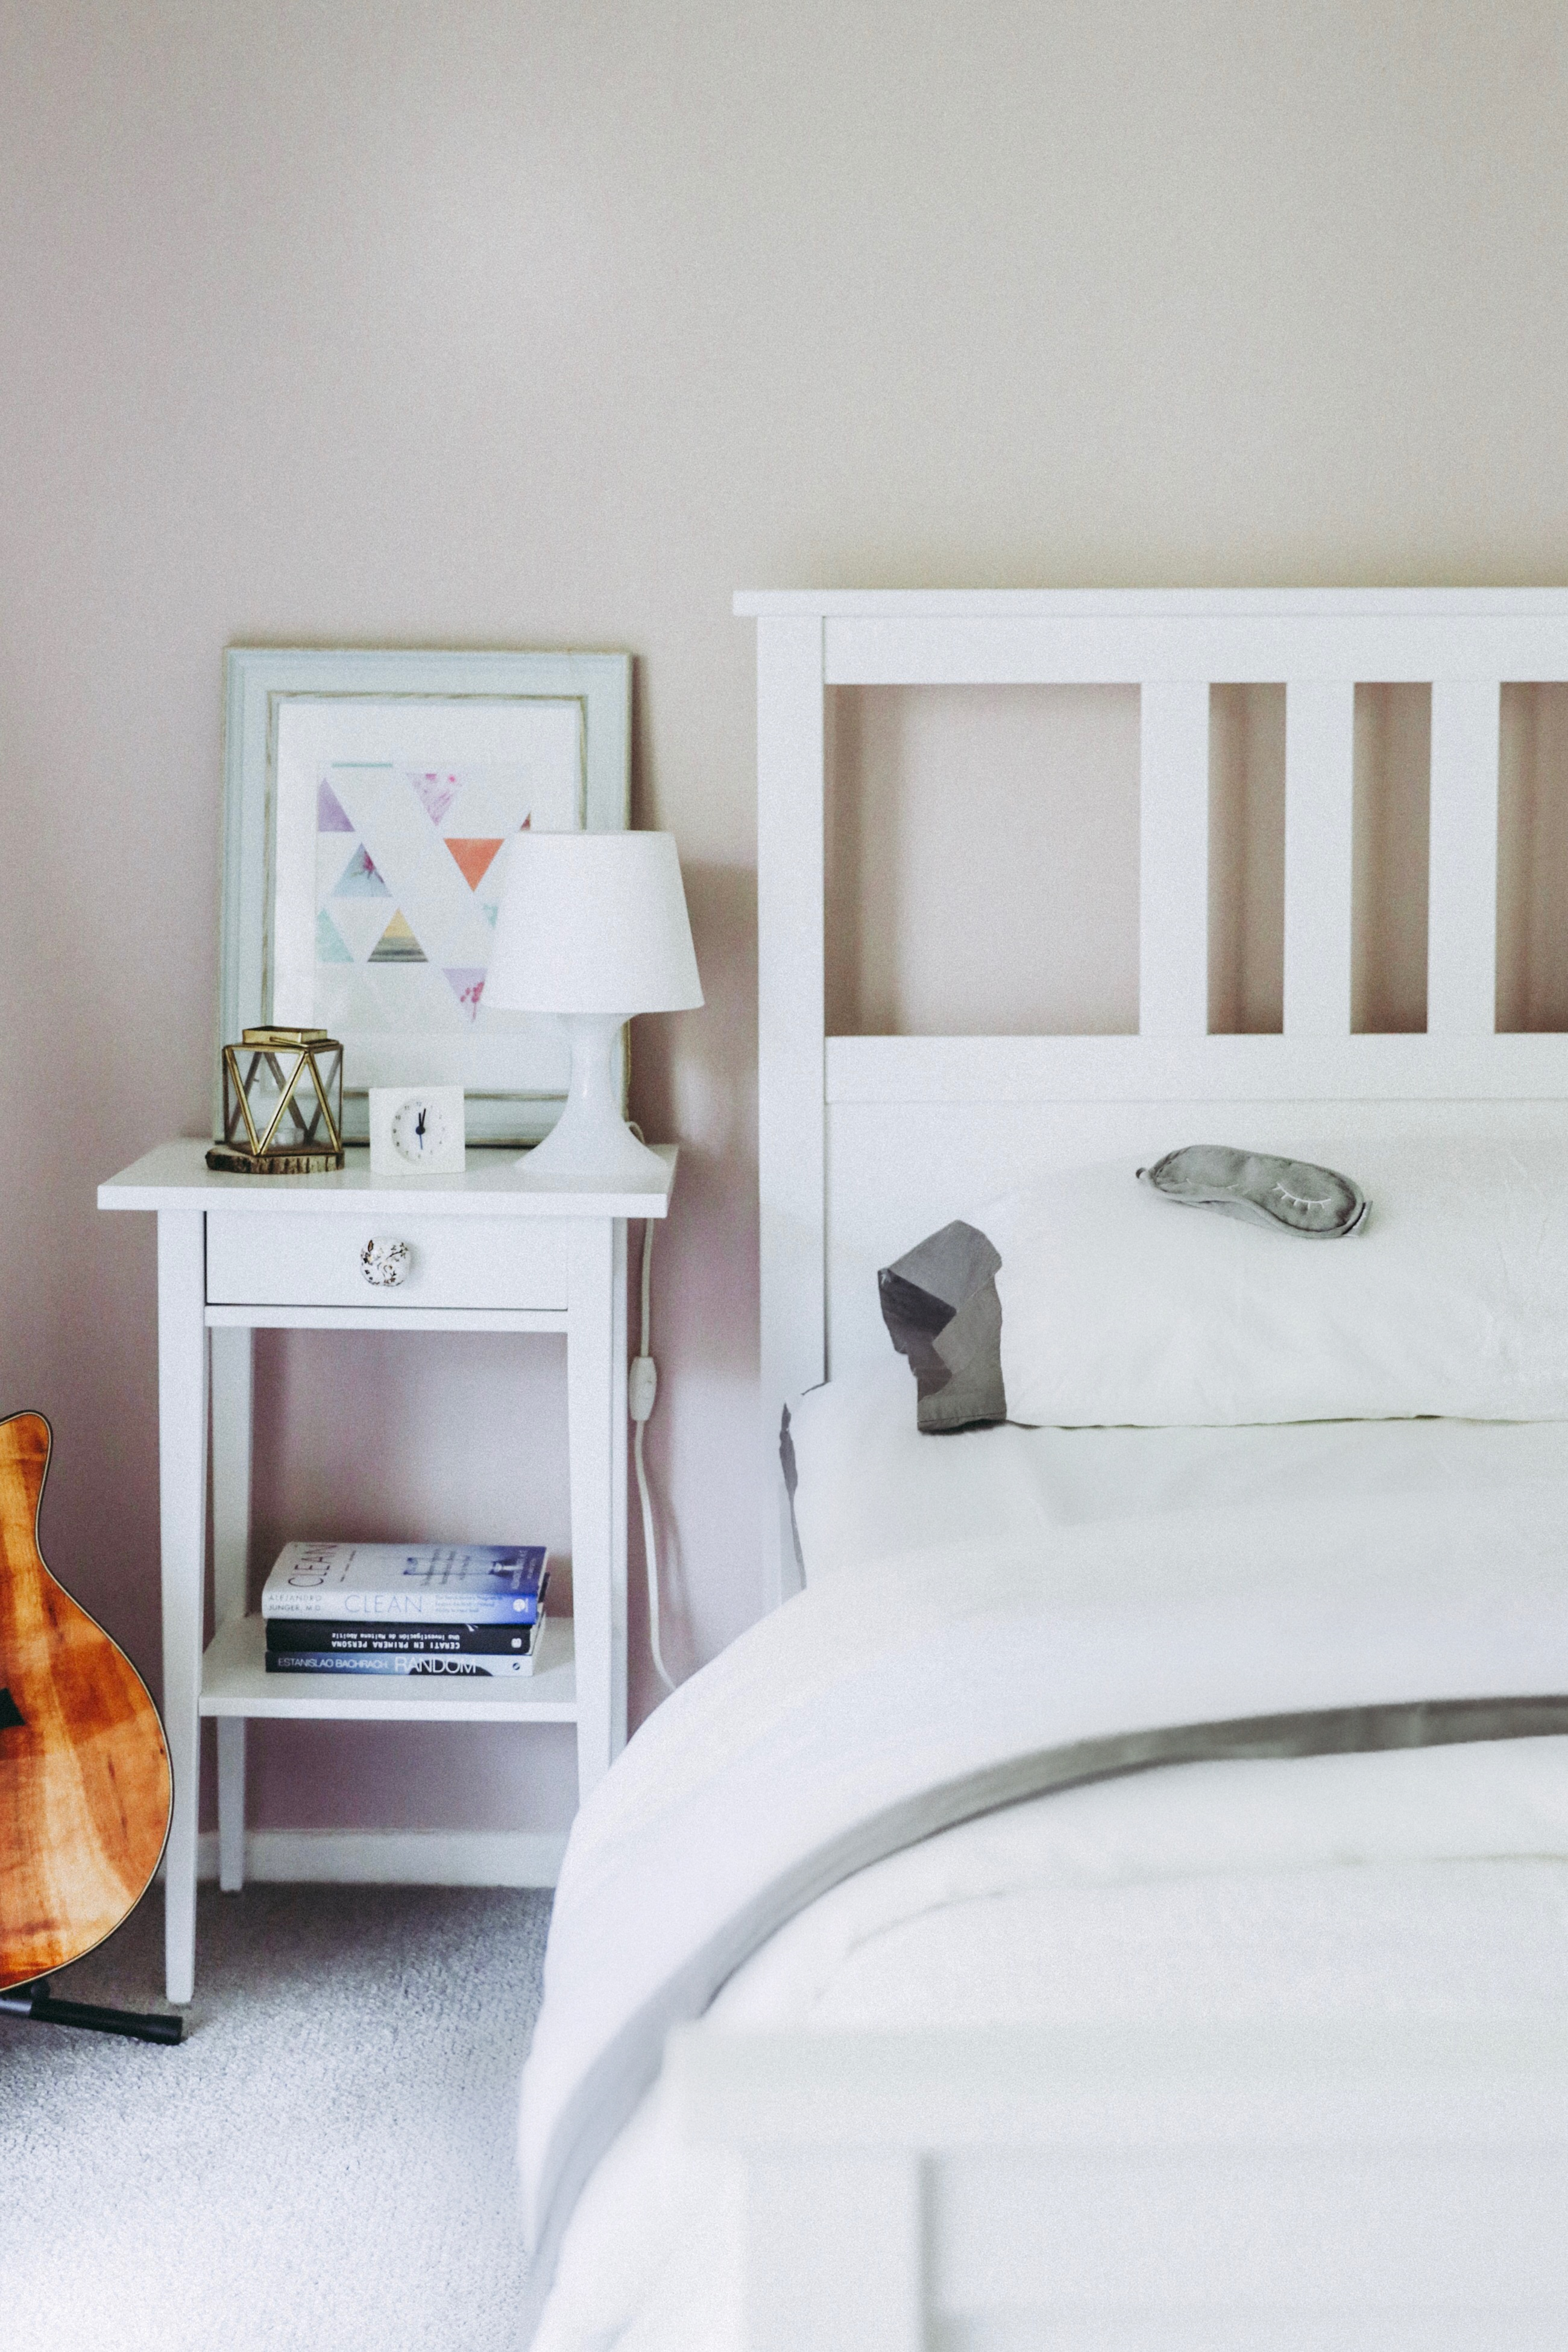 The Casual Free: 5 Ways To Get More Sleep With A Toddler